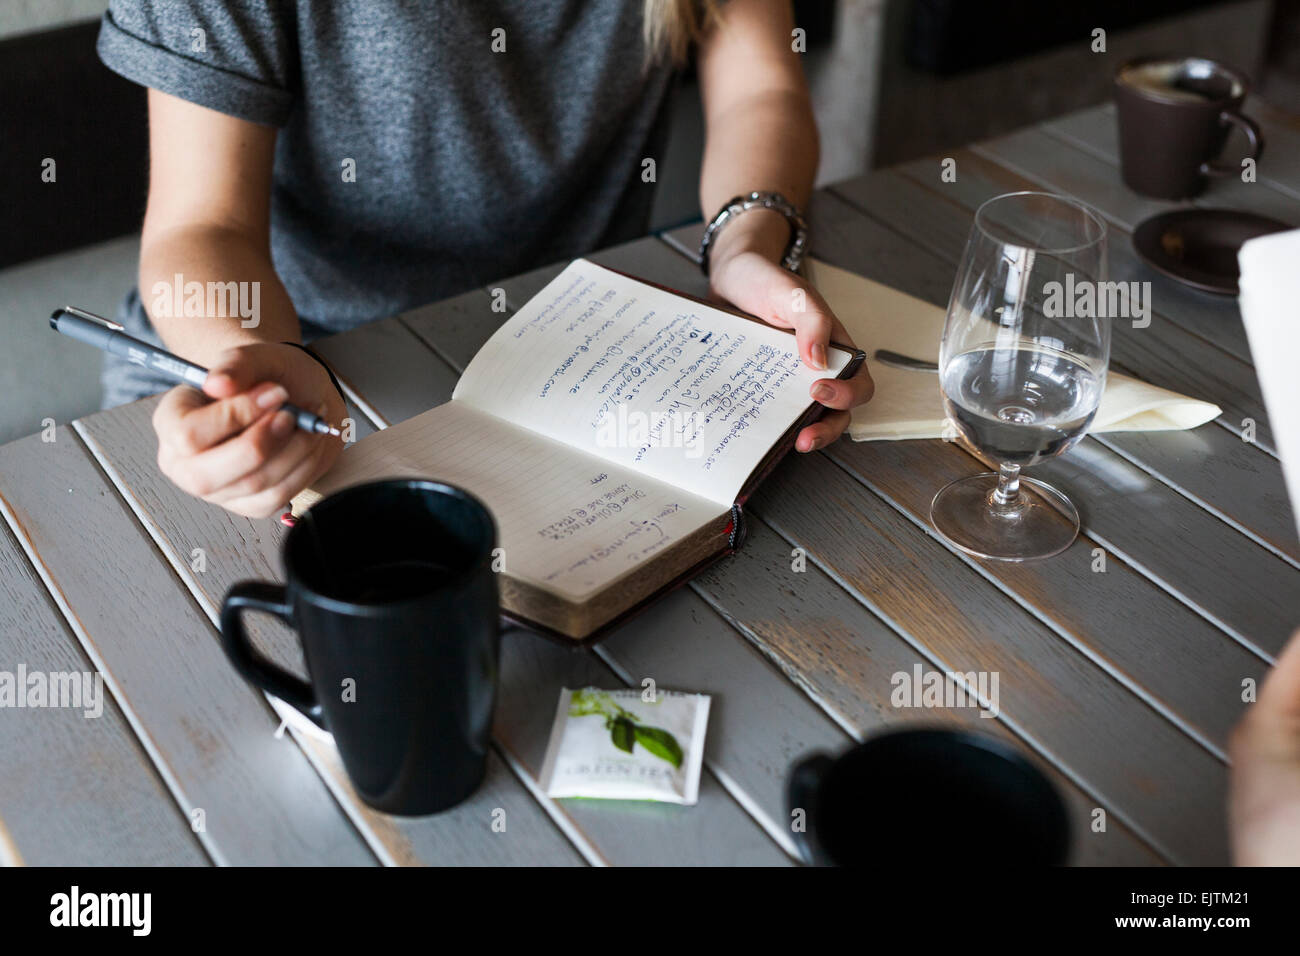 Midsection of woman writing in book - Stock Image